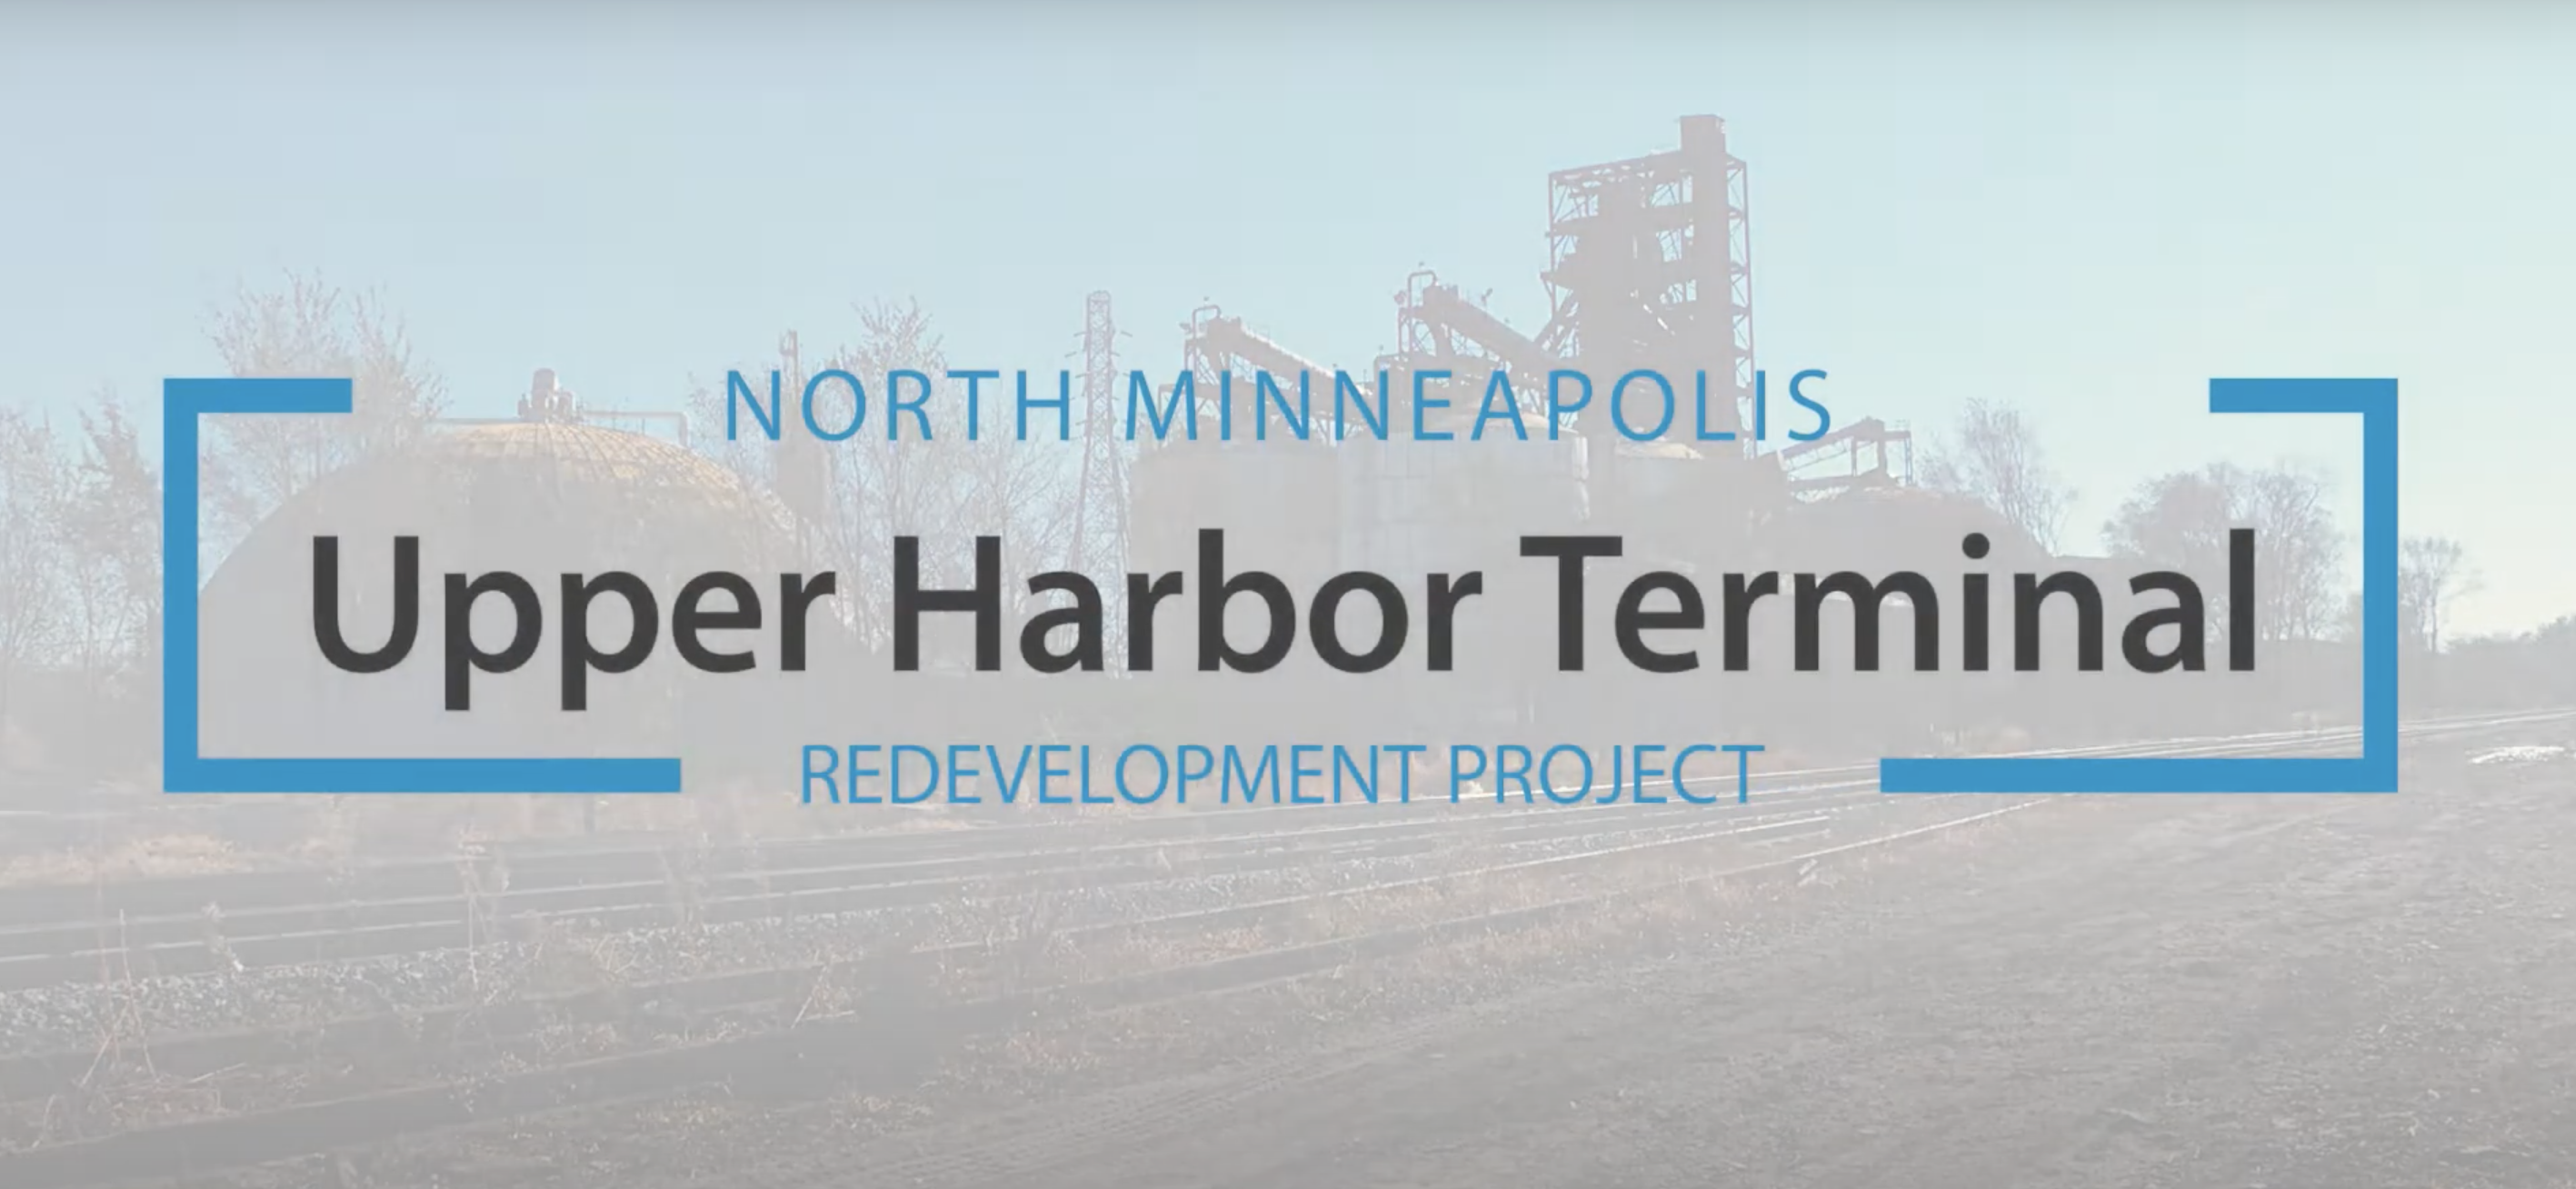 Redevelopment Plan for Upper Harbor Terminal Site